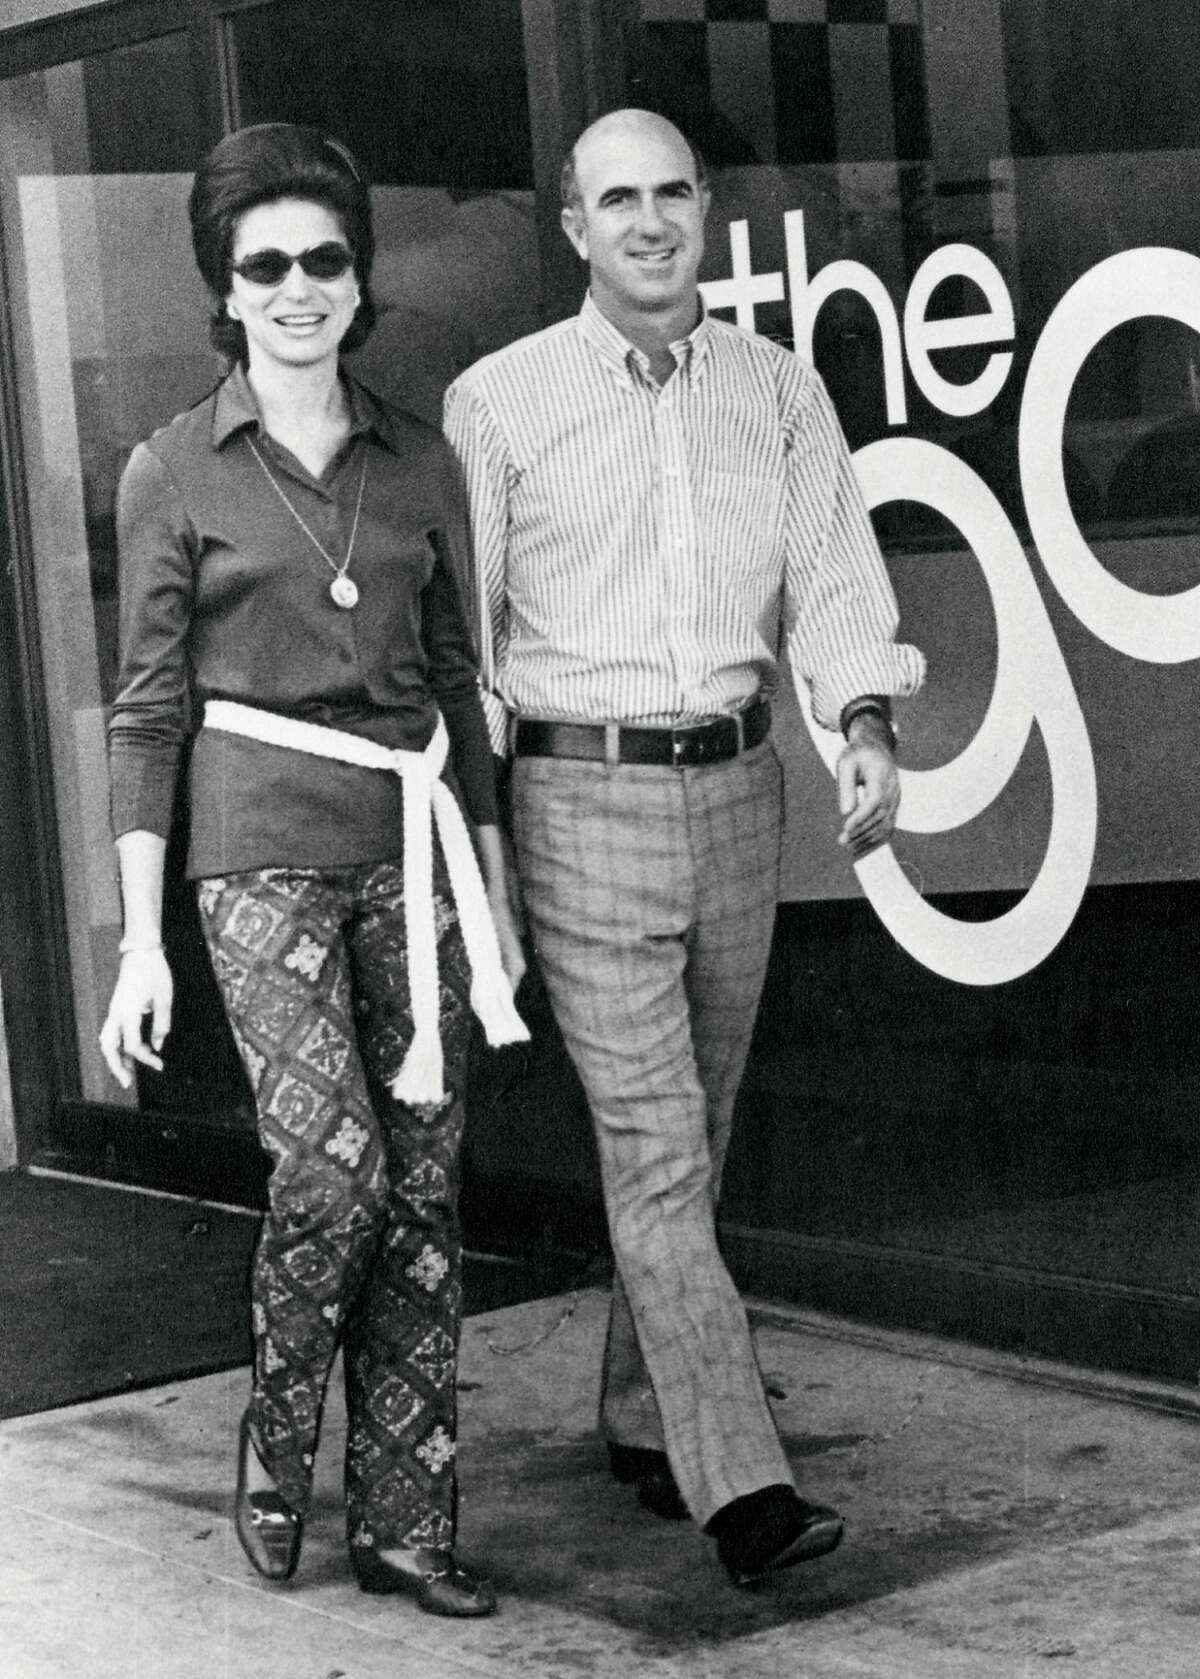 This 1969 photo provided by Gap Inc. shows Doris and Don Fisher in front of the first Gap store in San Francisco, Calif. Don Fisher, who co-founded clothing retailer Gap Inc., has died at age 81 after a long battle with cancer. The company said Fisher died at his home in San Francisco on Sunday, Sept. 27, 2009.